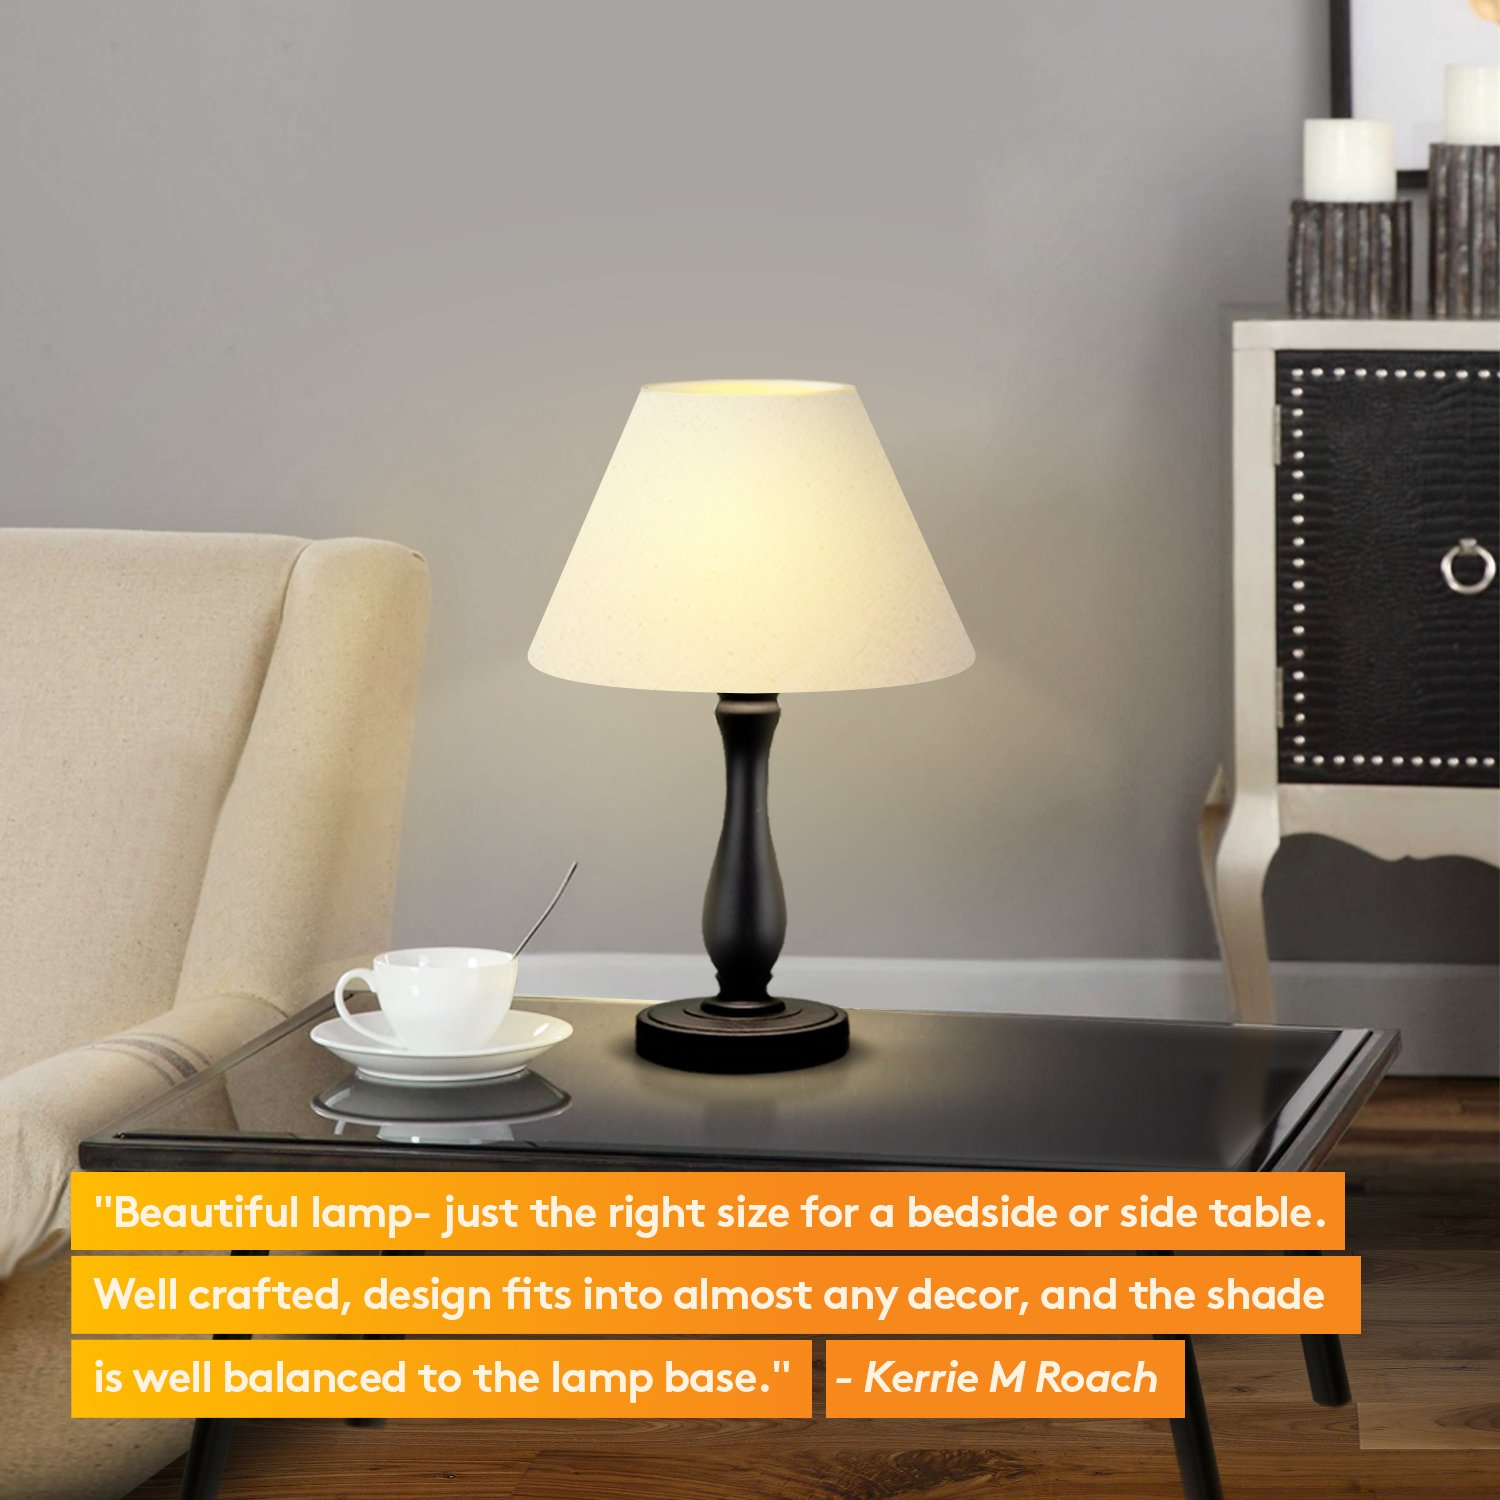 Brightech Noah LED Side Bedside Table & Desk Lamp: Traditional Elegant Black Wood Base, Neutral Shade & Soft, Ambient Light for Bedroom Nightstand, Living Room, Office; Incl. LED Bulb, Cord by Brightech (Image #6)